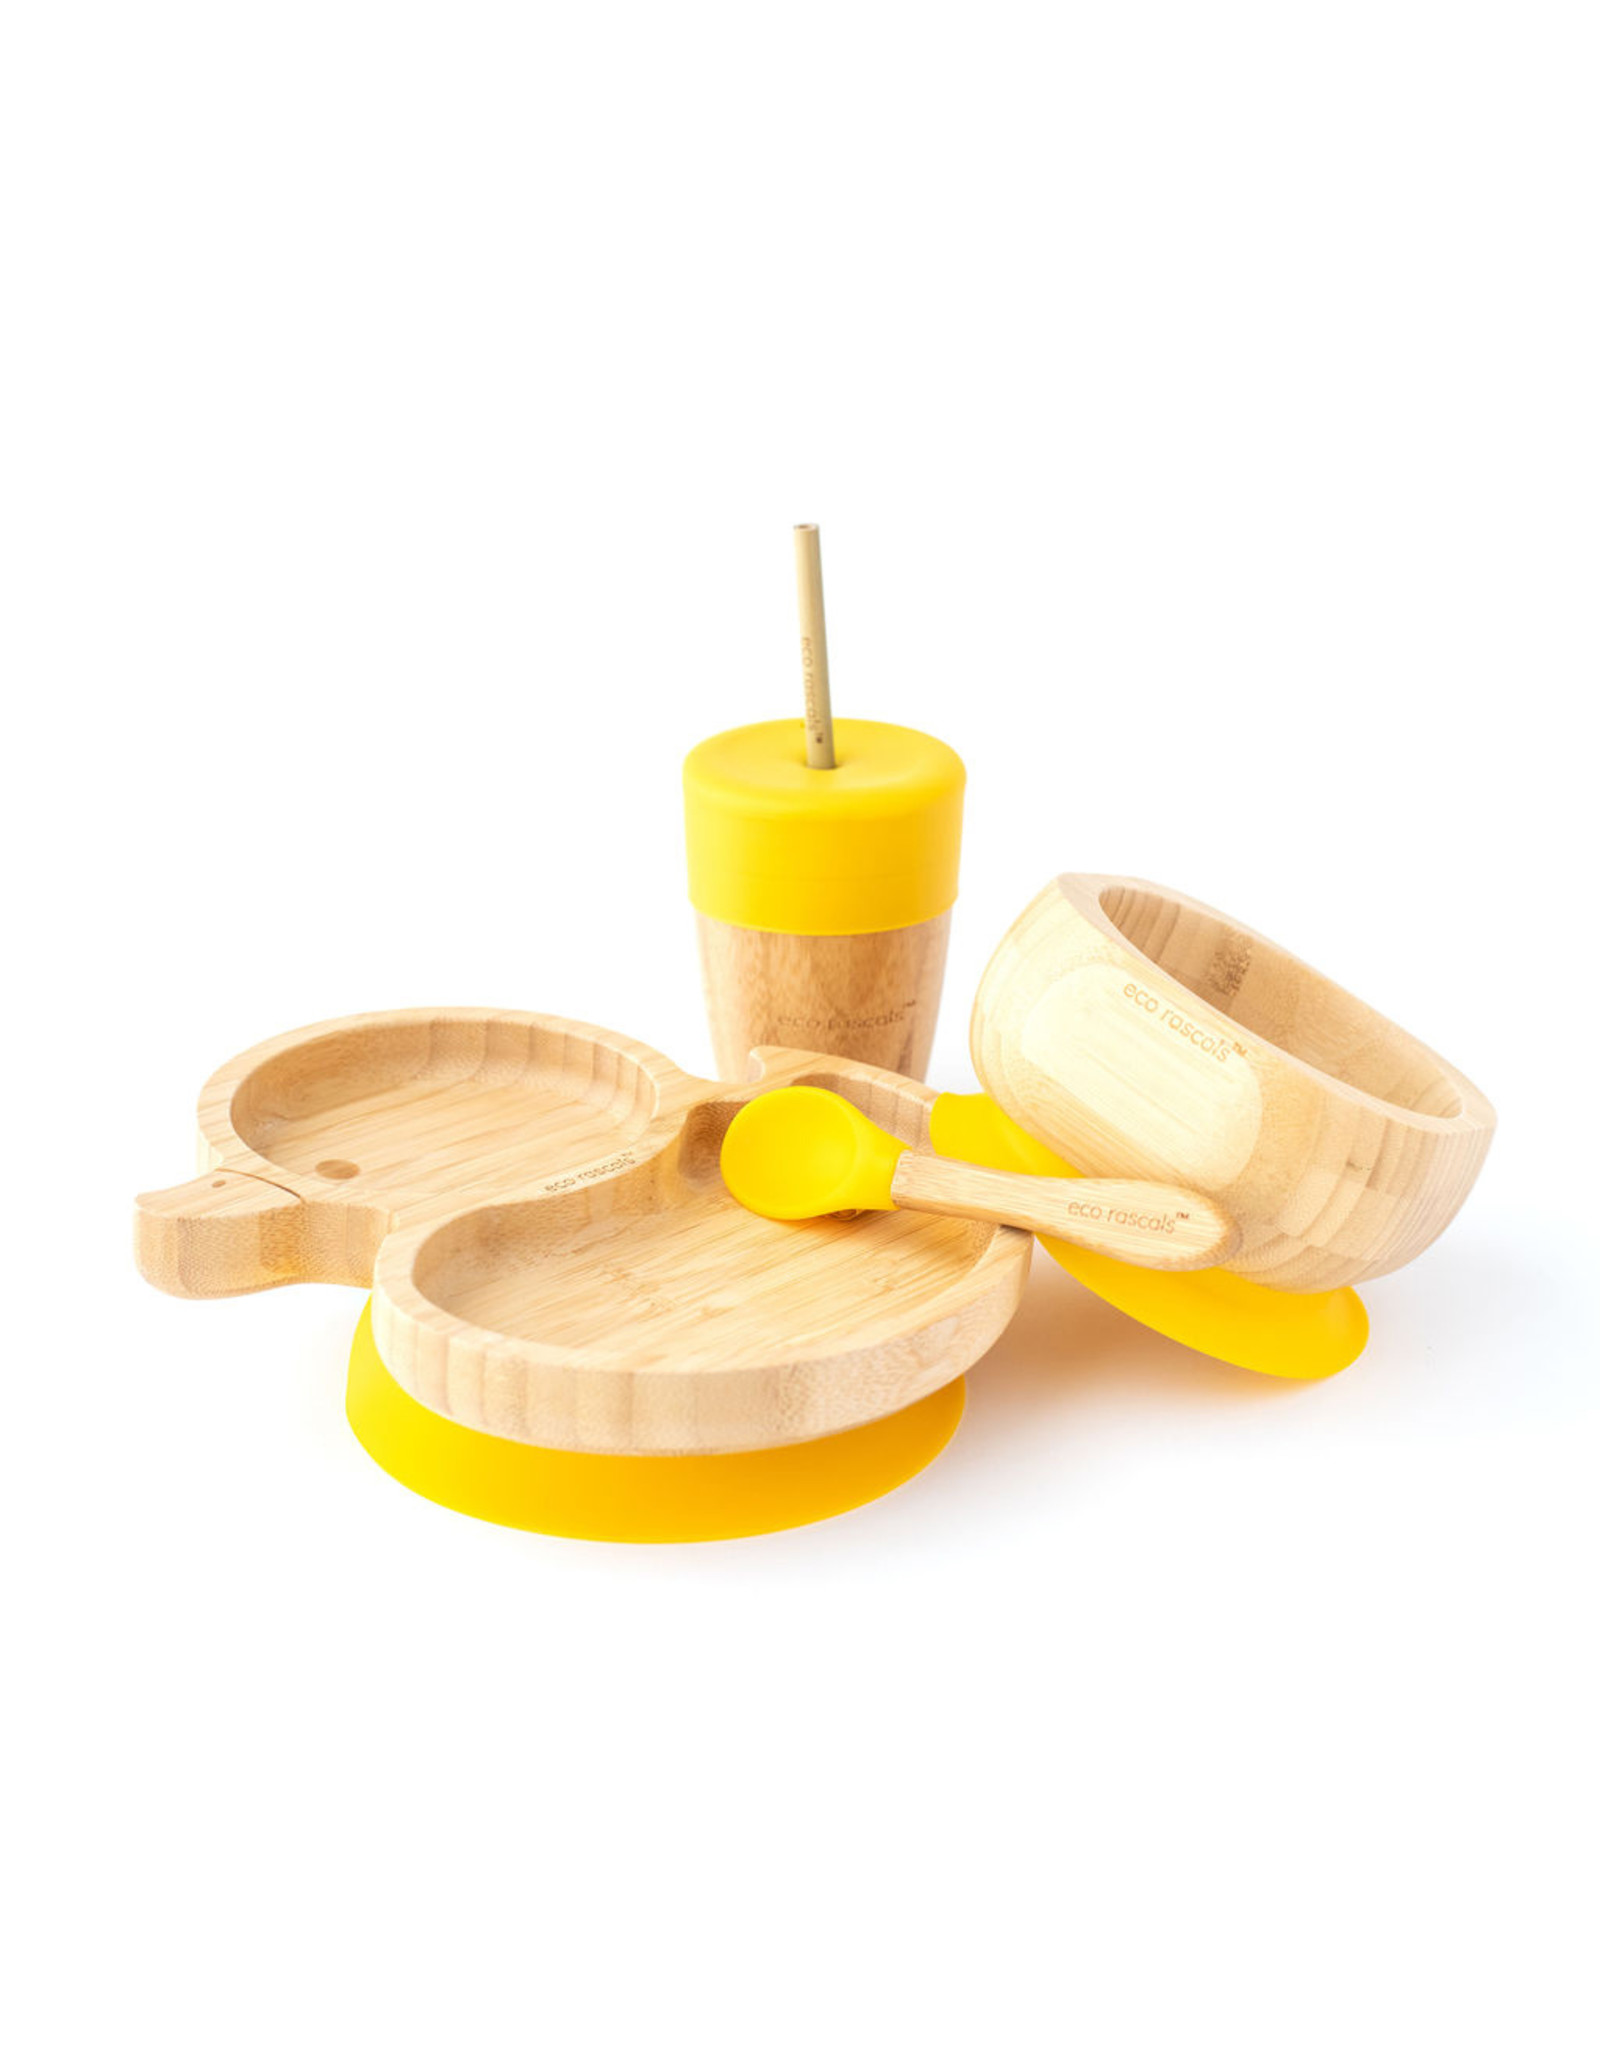 Eco Rascals Duck Shaped Suction Plate and Bowl Set with Straw Cup